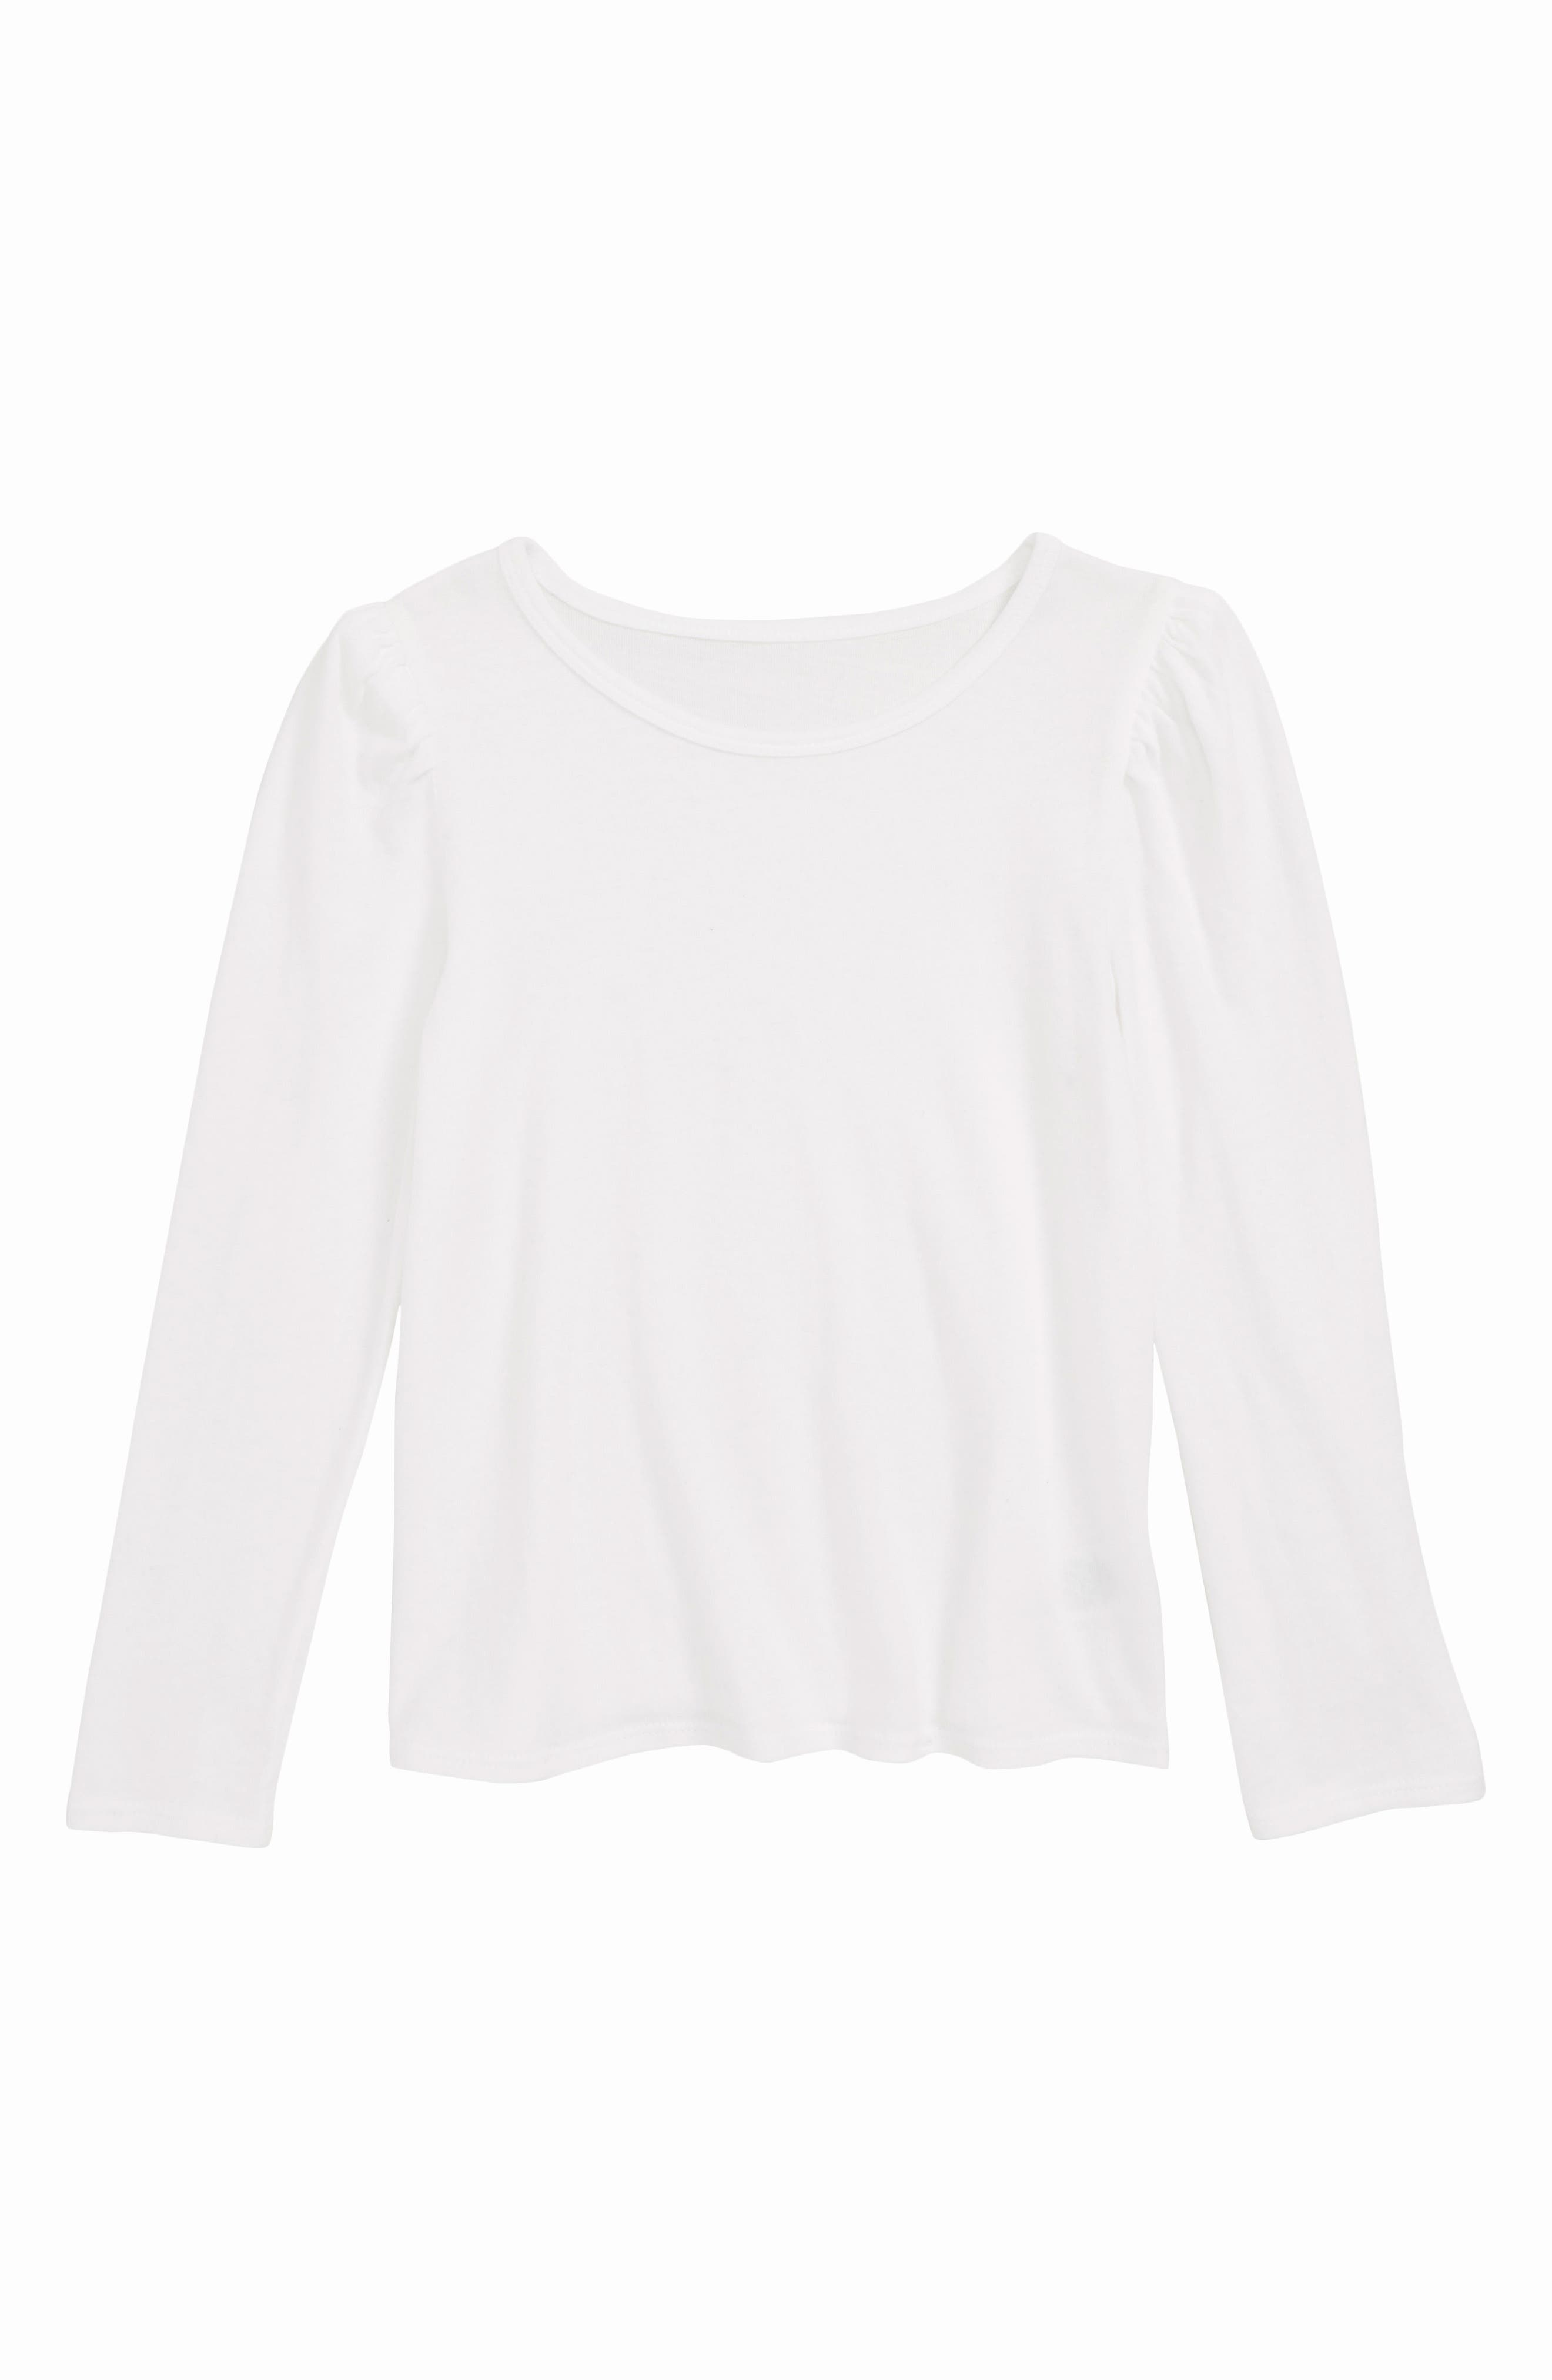 SOMETHING NAVY, Puff Sleeve Knit Top, Main thumbnail 1, color, WHITE